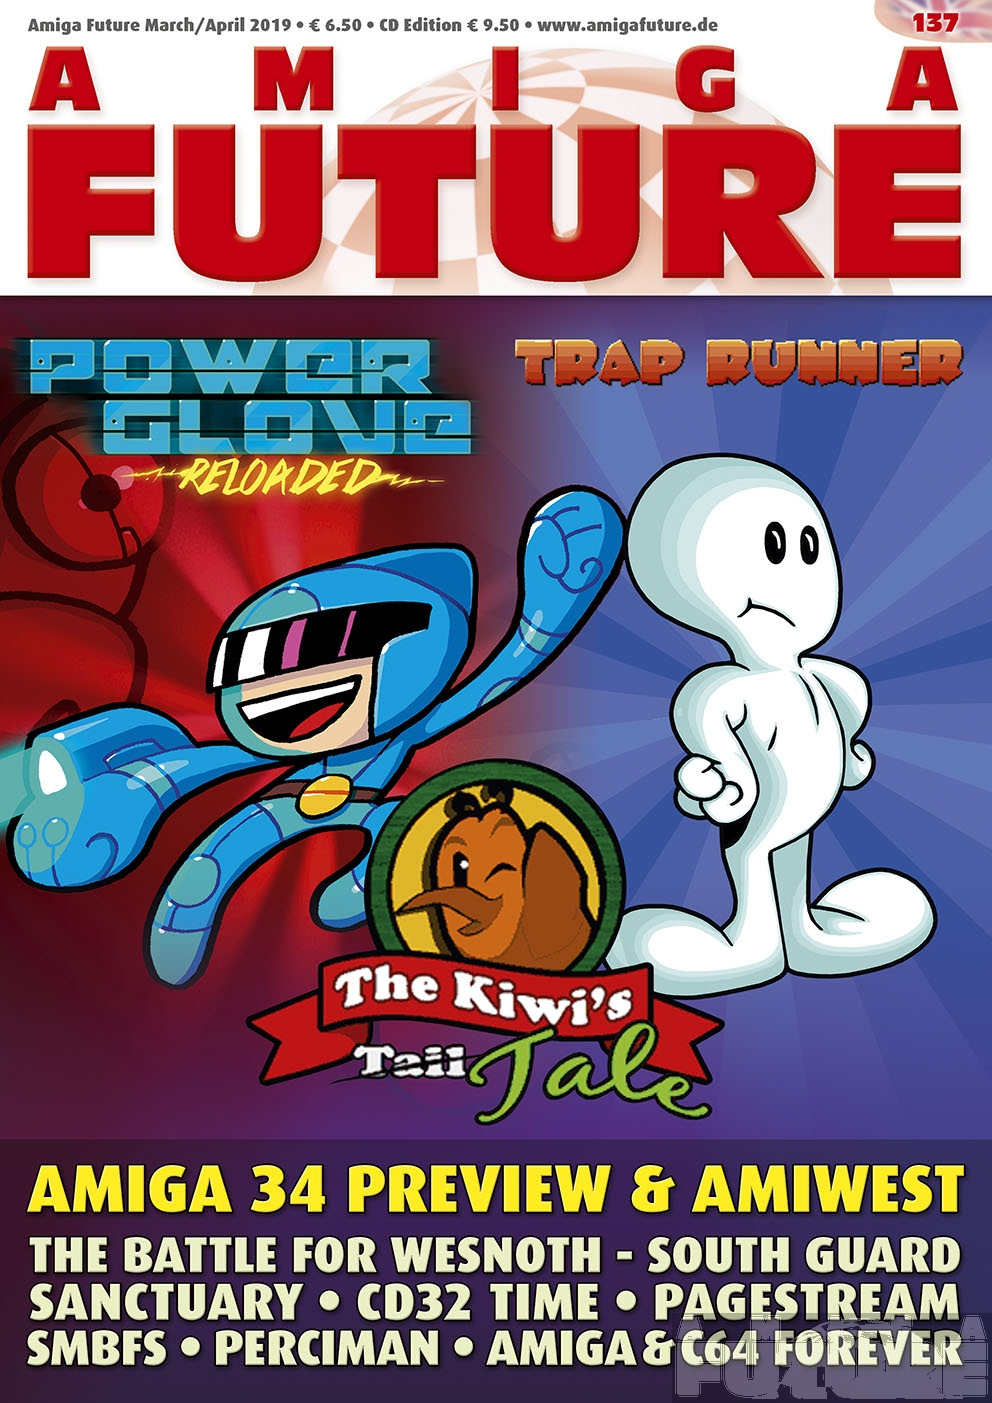 Amiga Future Issue 137 (English)